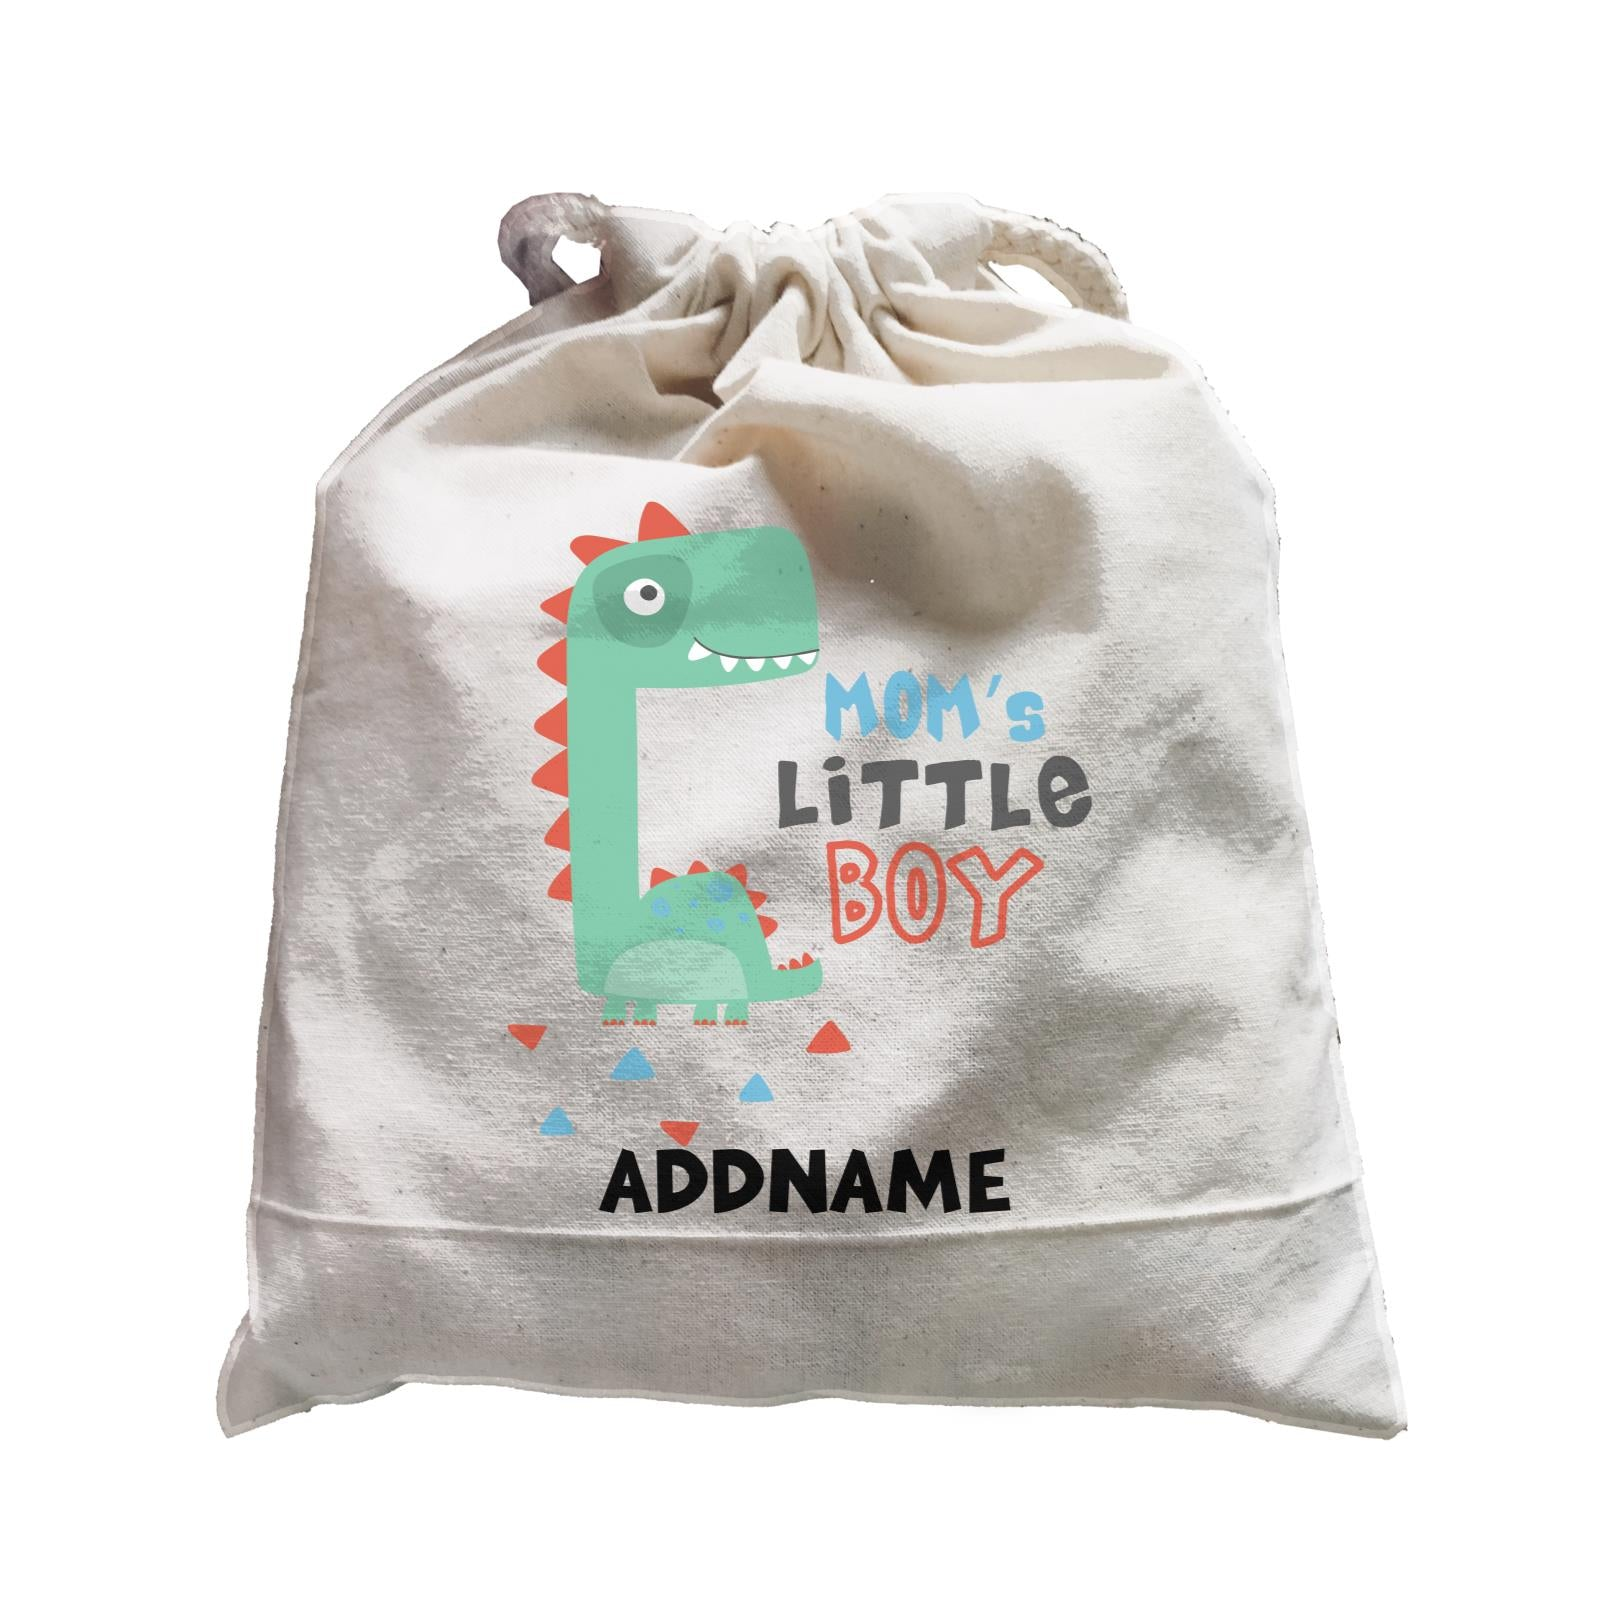 Mom's Little Boy Dinosaur Addname Bag Satchel